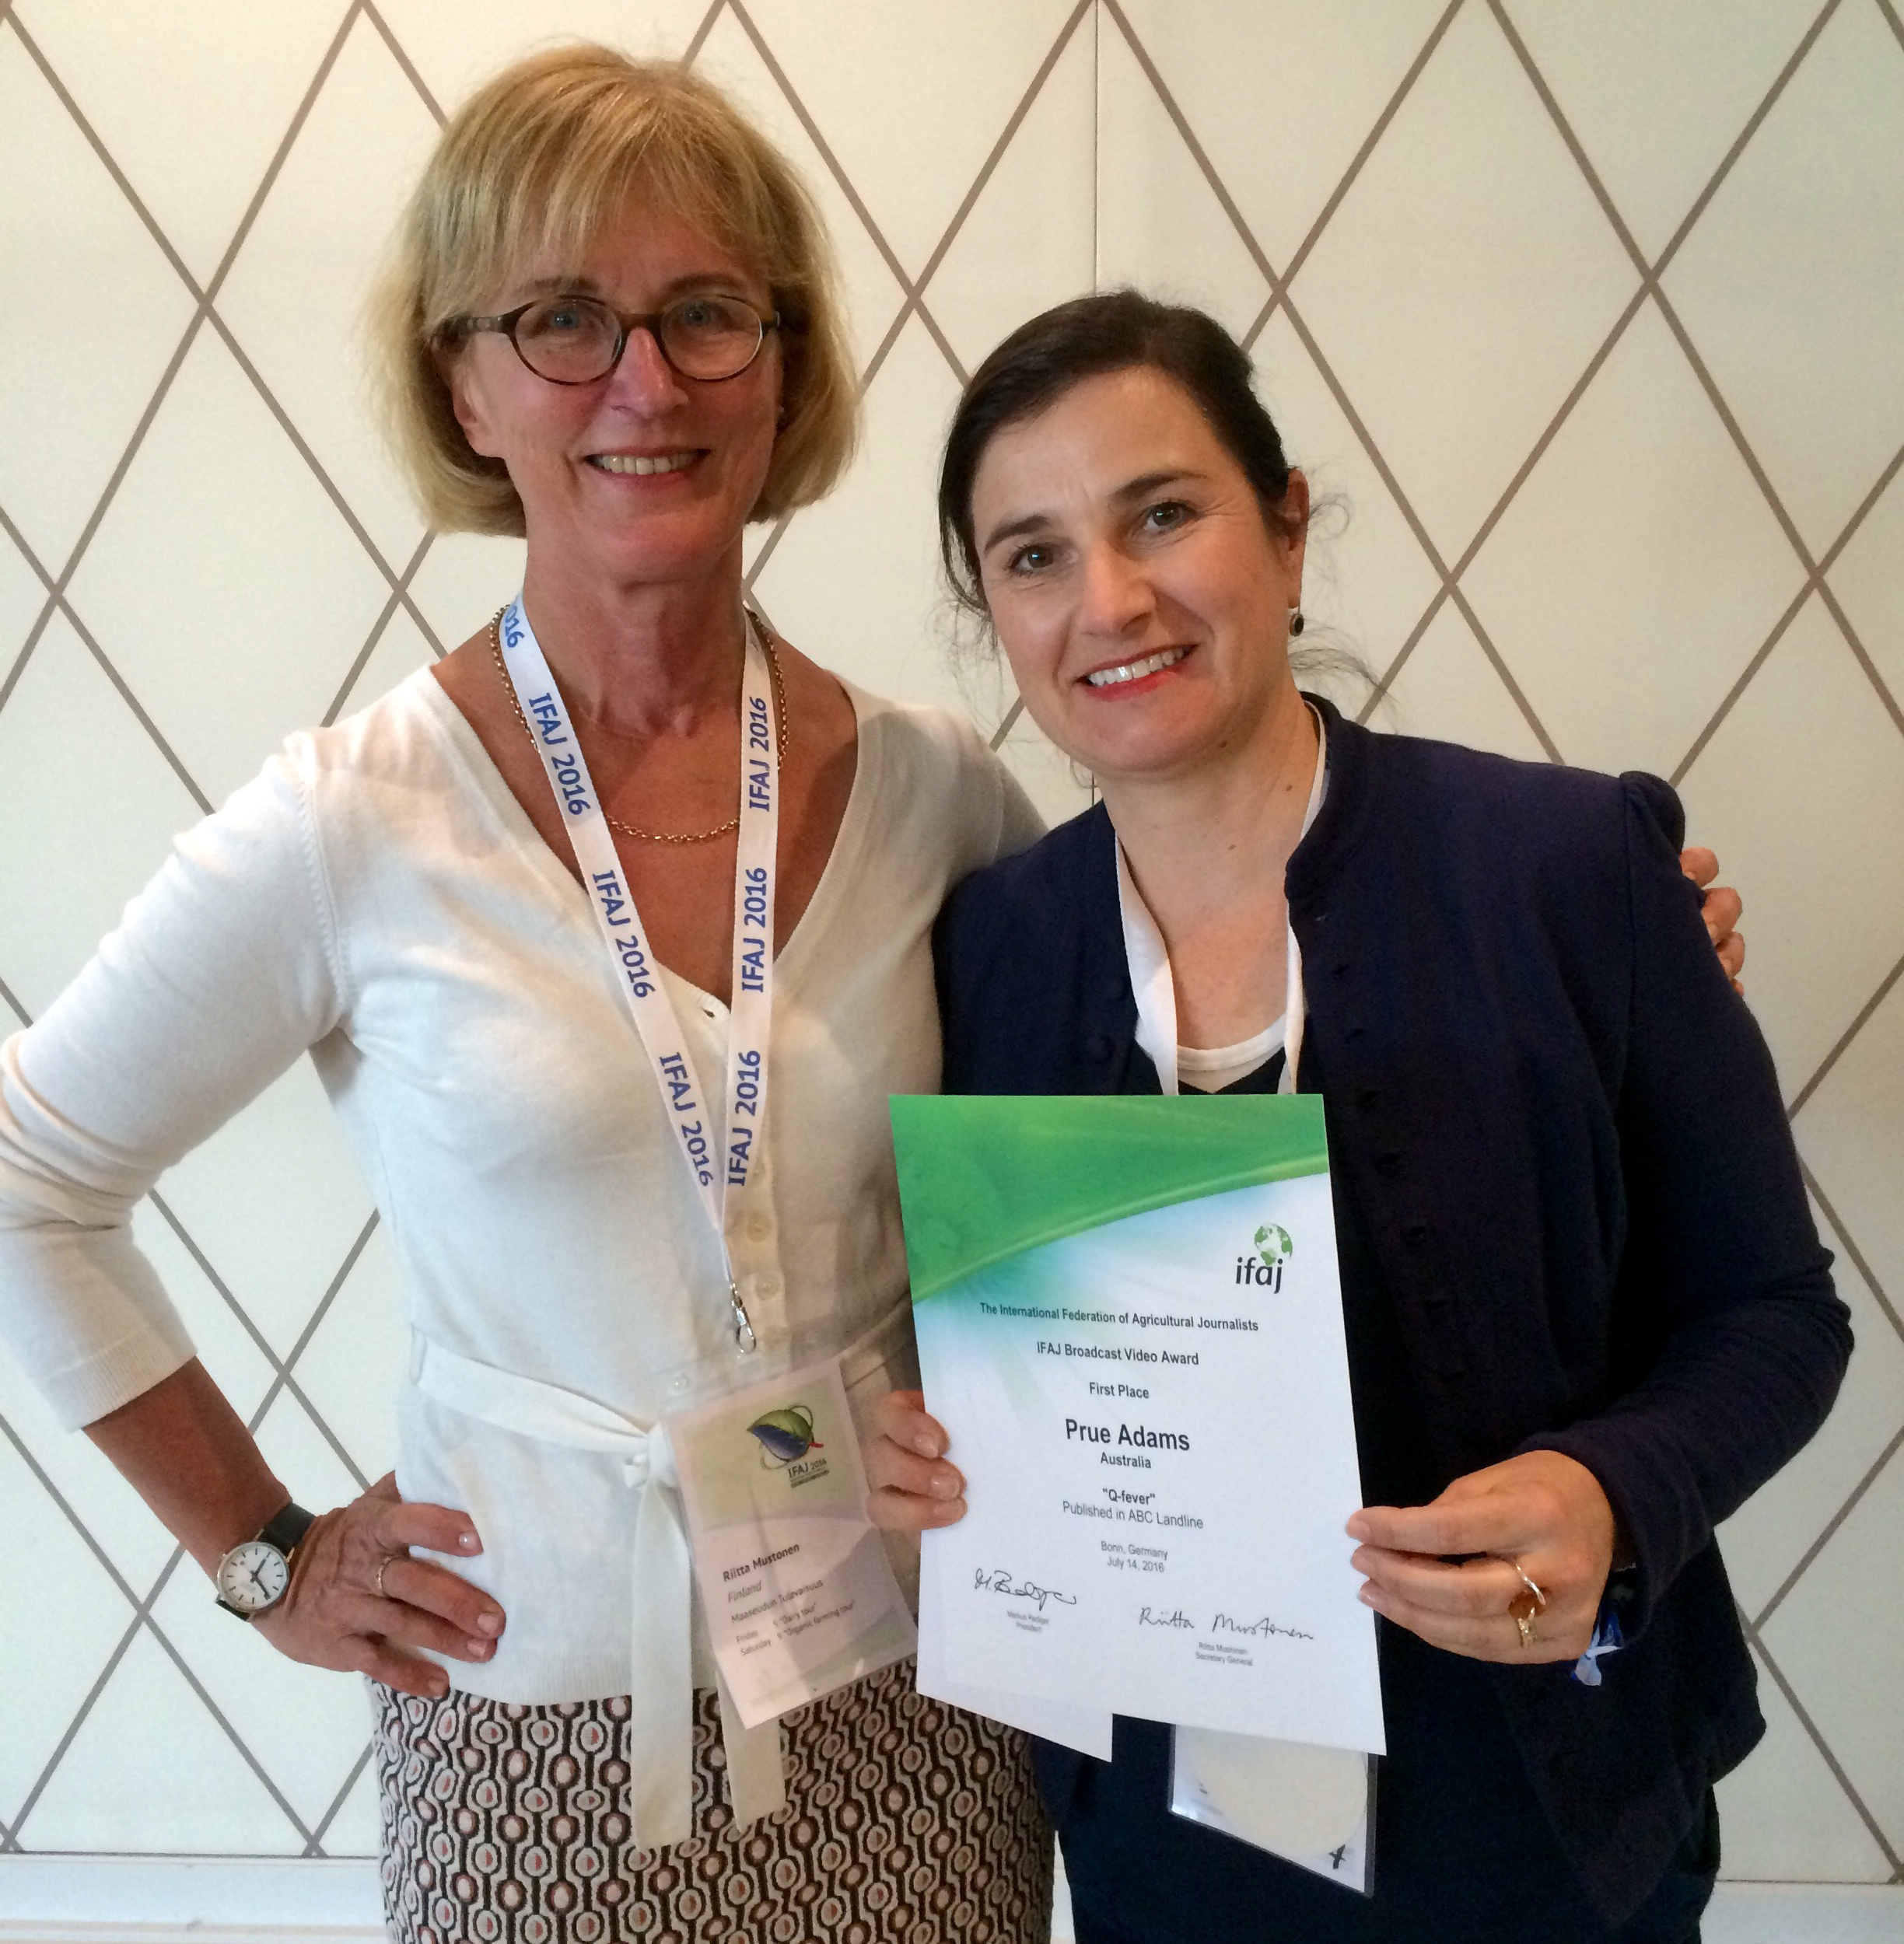 Rural Media South Australia member and SA reporter for ABC Television's Landline program, Prue Adams, is presented with her award by Riita Mustonen, IFAJ.